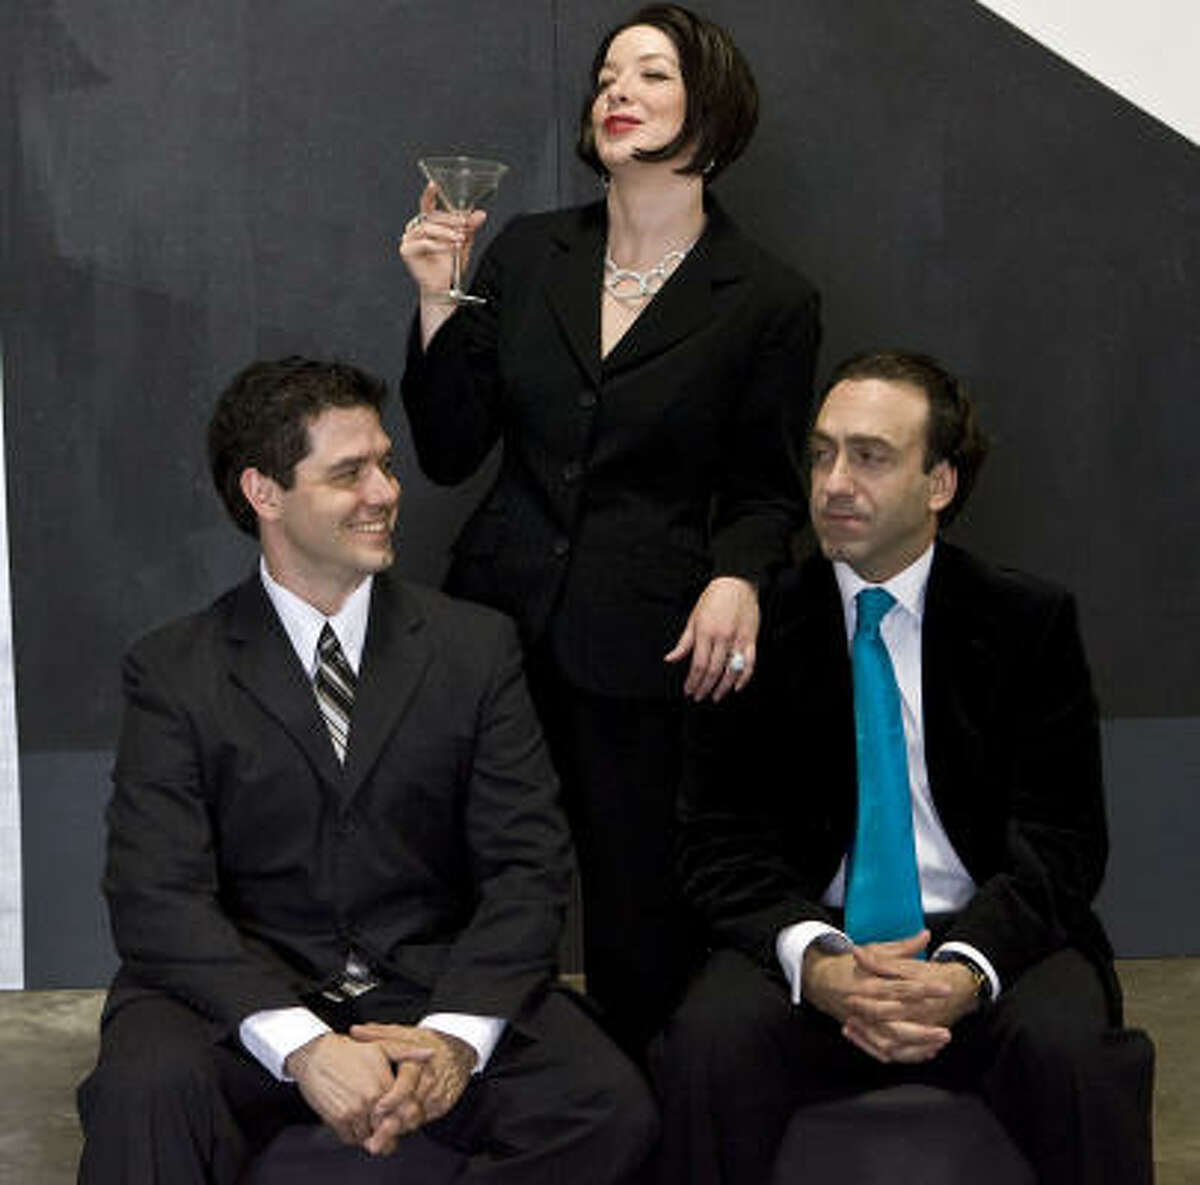 Bobby (Luther Chakurian, right) builds his social network around five married couples, including Larry (John Gremillion) and Joanne (Rebekah Dahl).